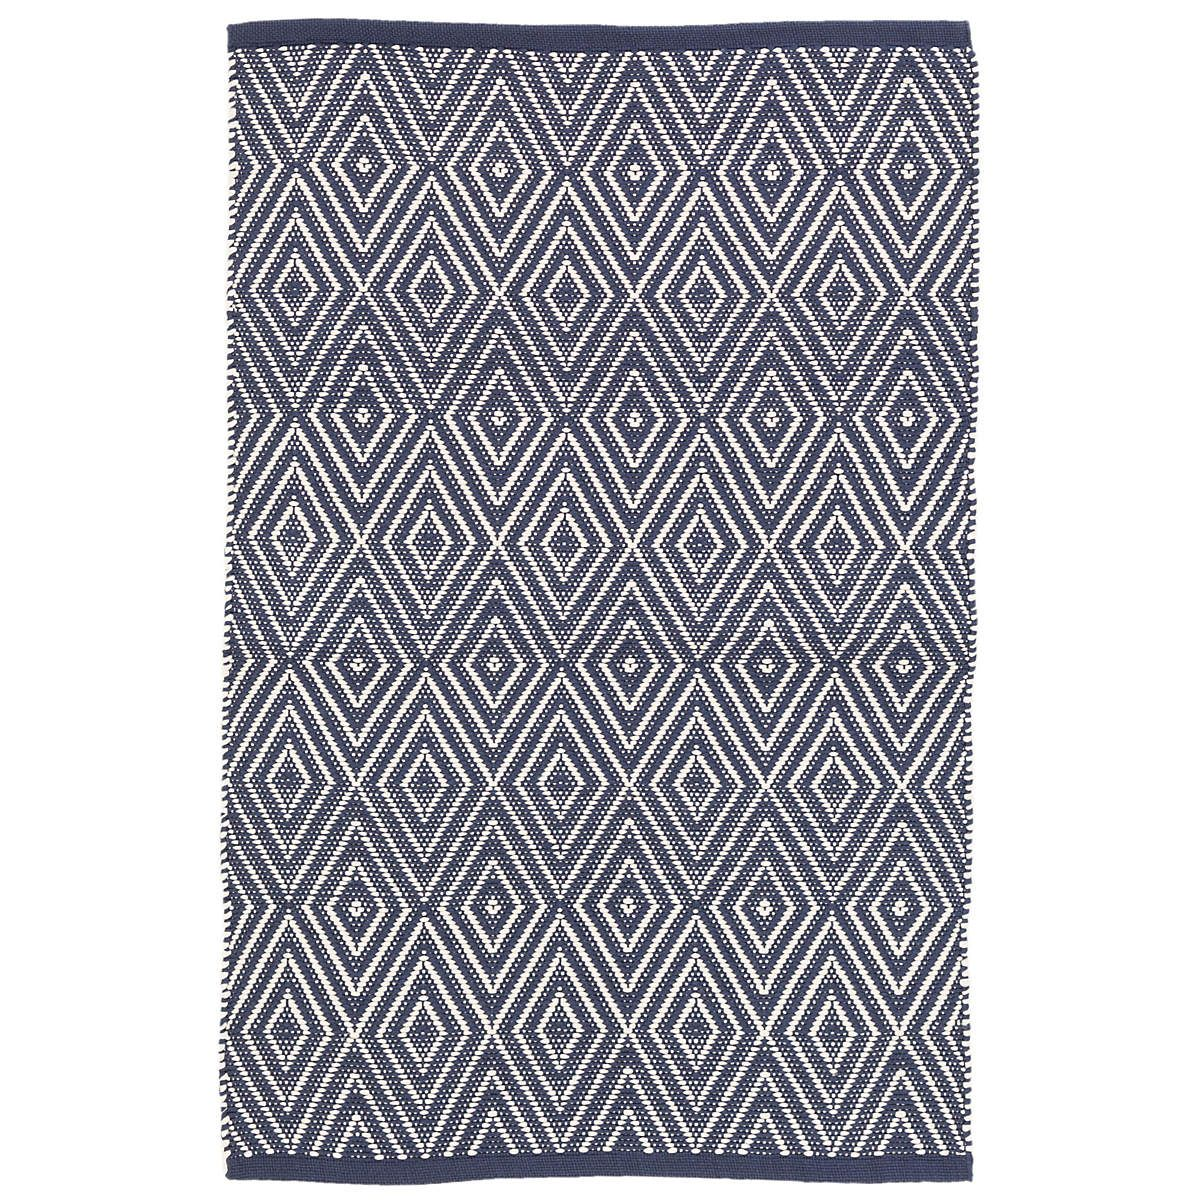 Create A Timeless Look With This Best Ing Indoor Outdoor Rug Made From